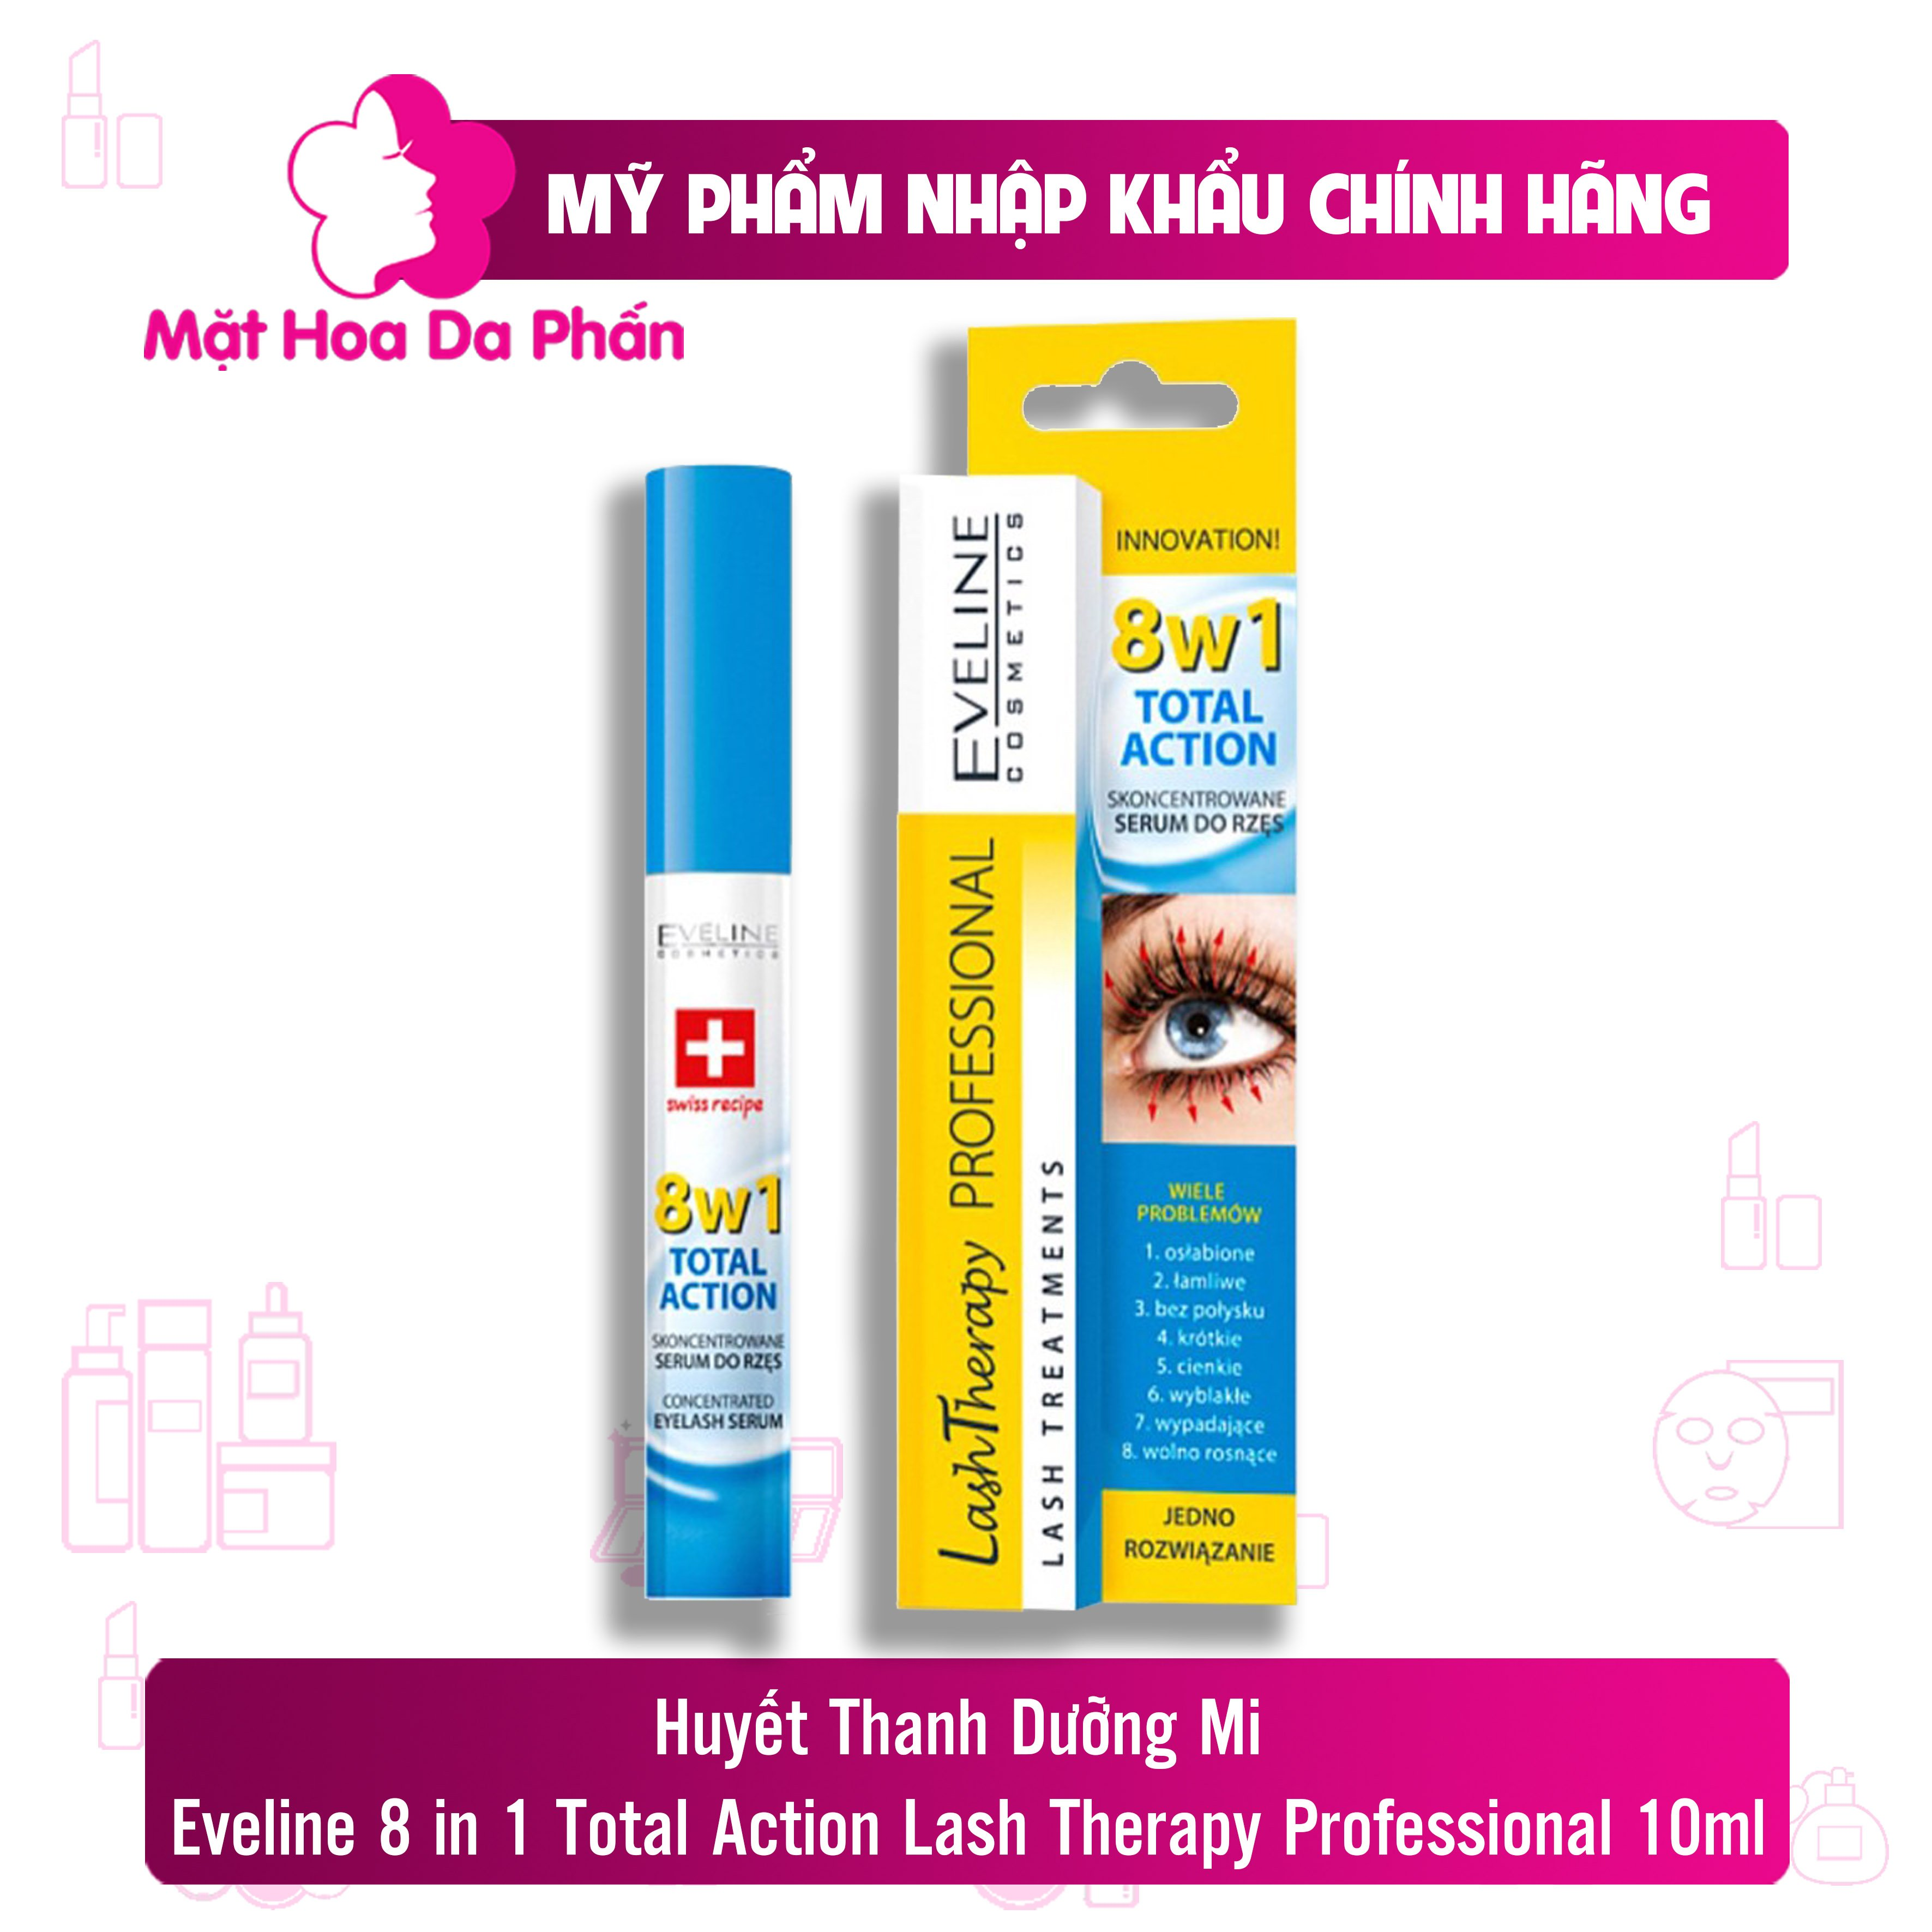 Dưỡng Mi Eveline 8 in 1 Total Action Lash Therapy Professional